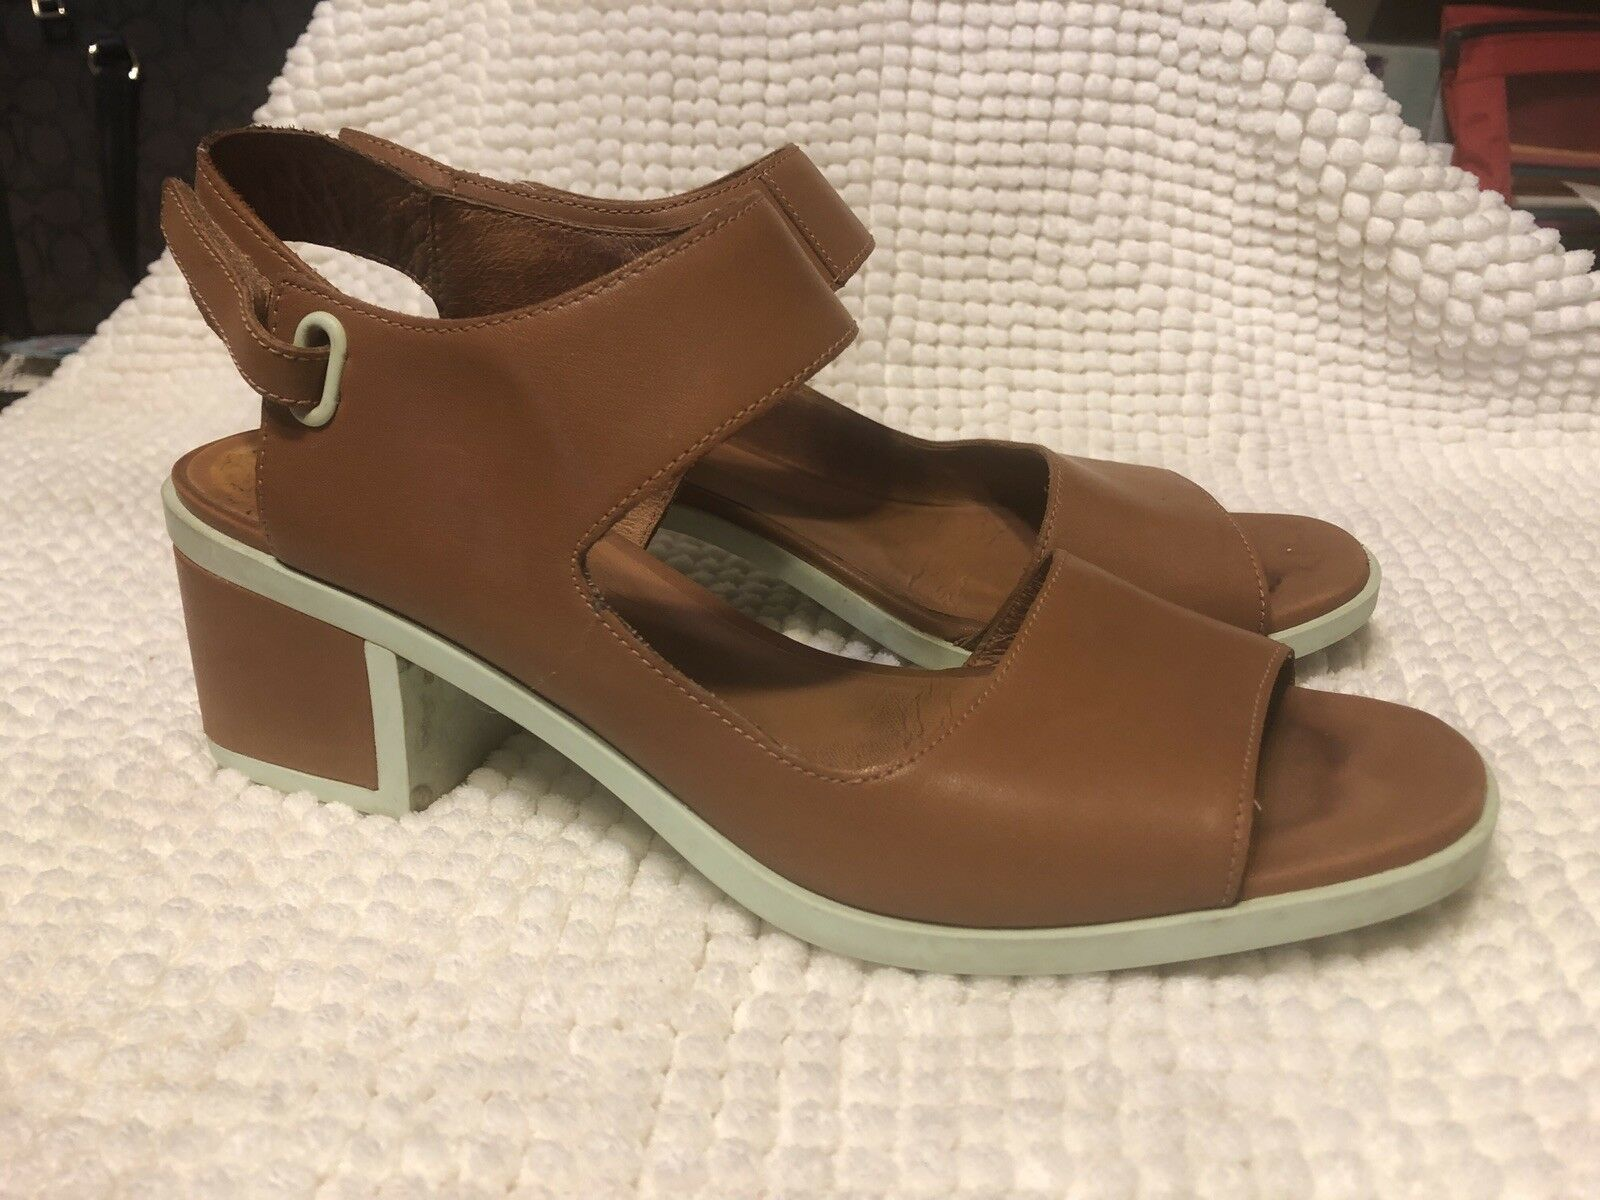 Camper Women's Leather Rubber Beige Sling Back Sandals Size 41  22527-001 Maude